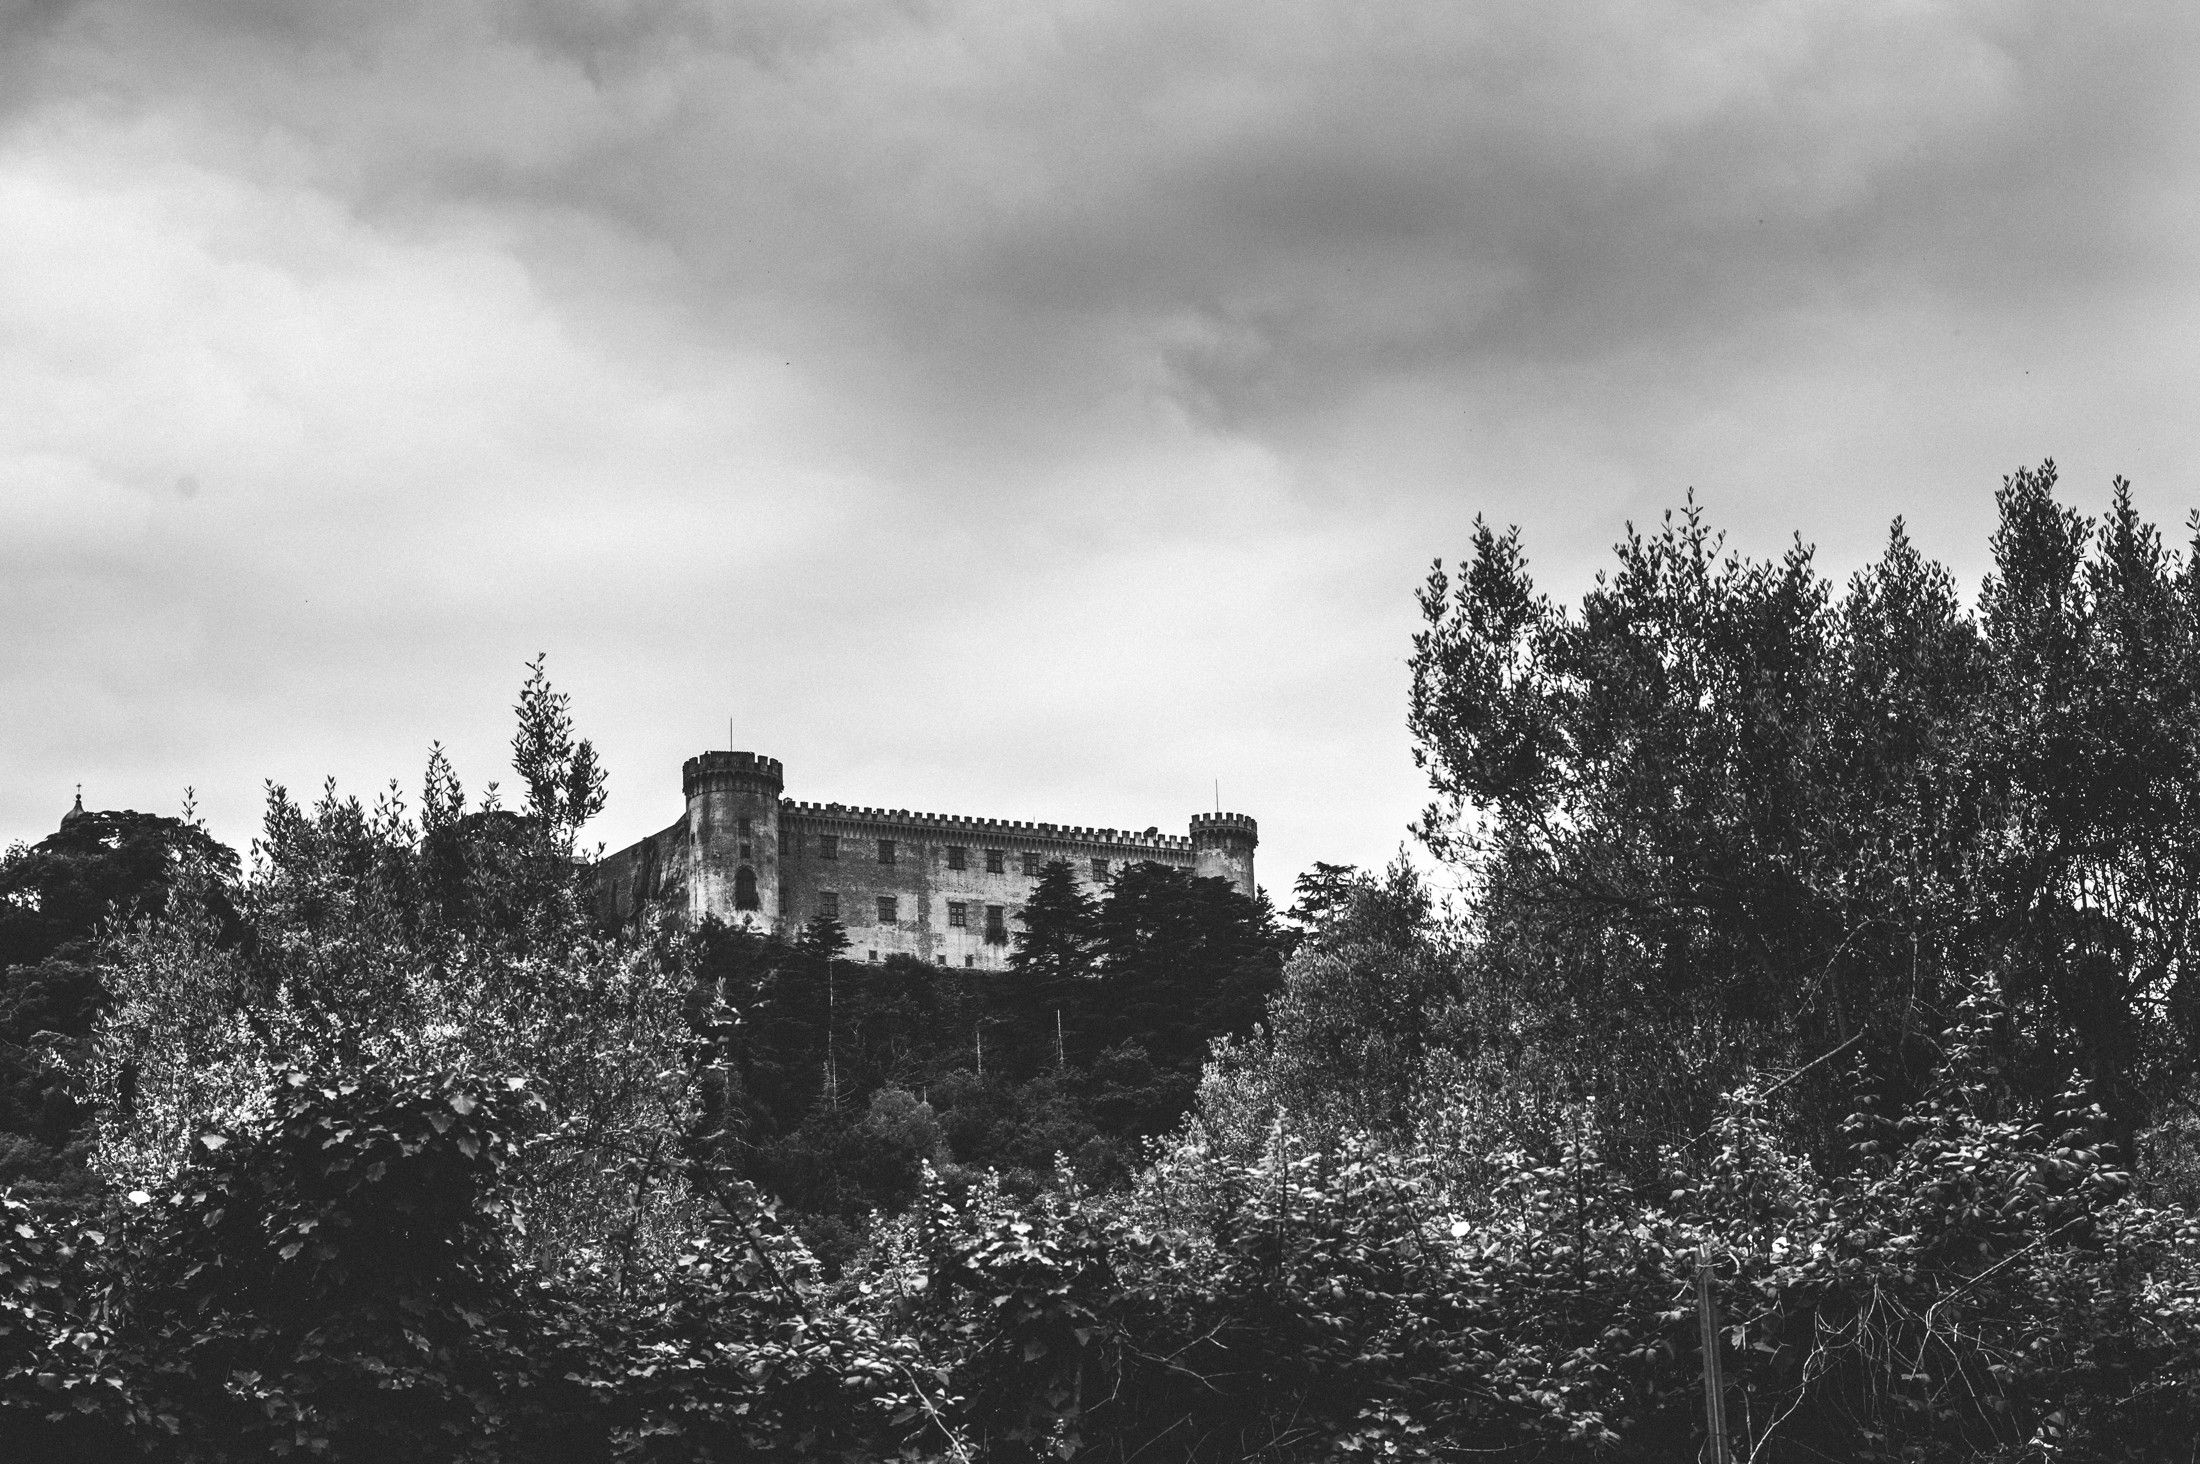 bracciano castle in black and white